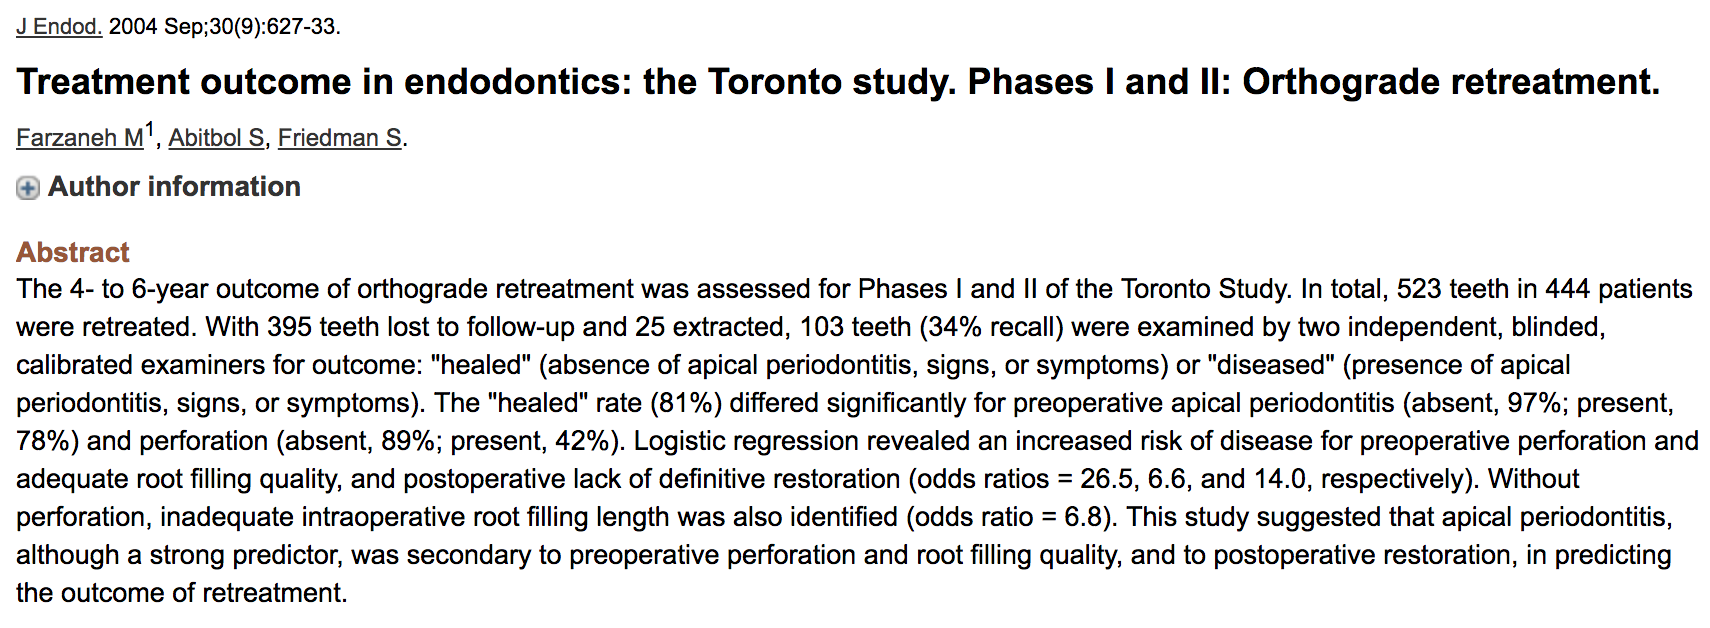 Dr. Sarah Abitbol - Treatment outcome in endodontics: the Toronto study. Phases I and II